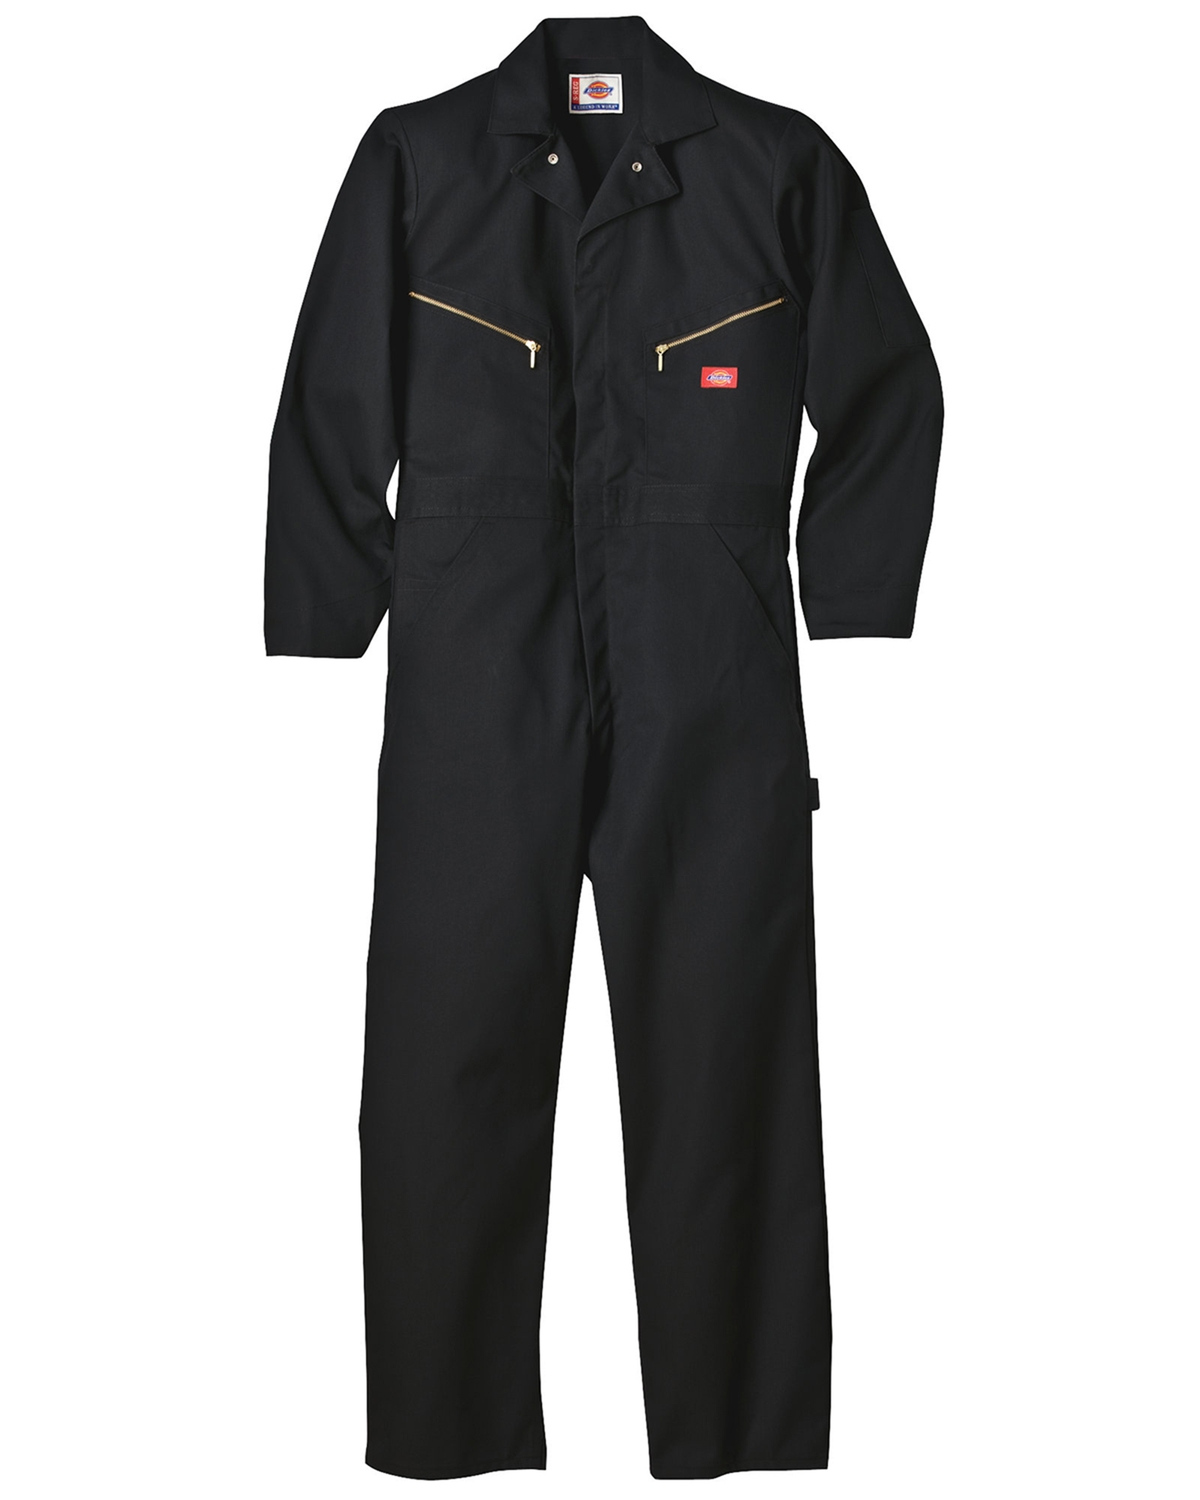 7.5 oz. Deluxe Coverall Blended